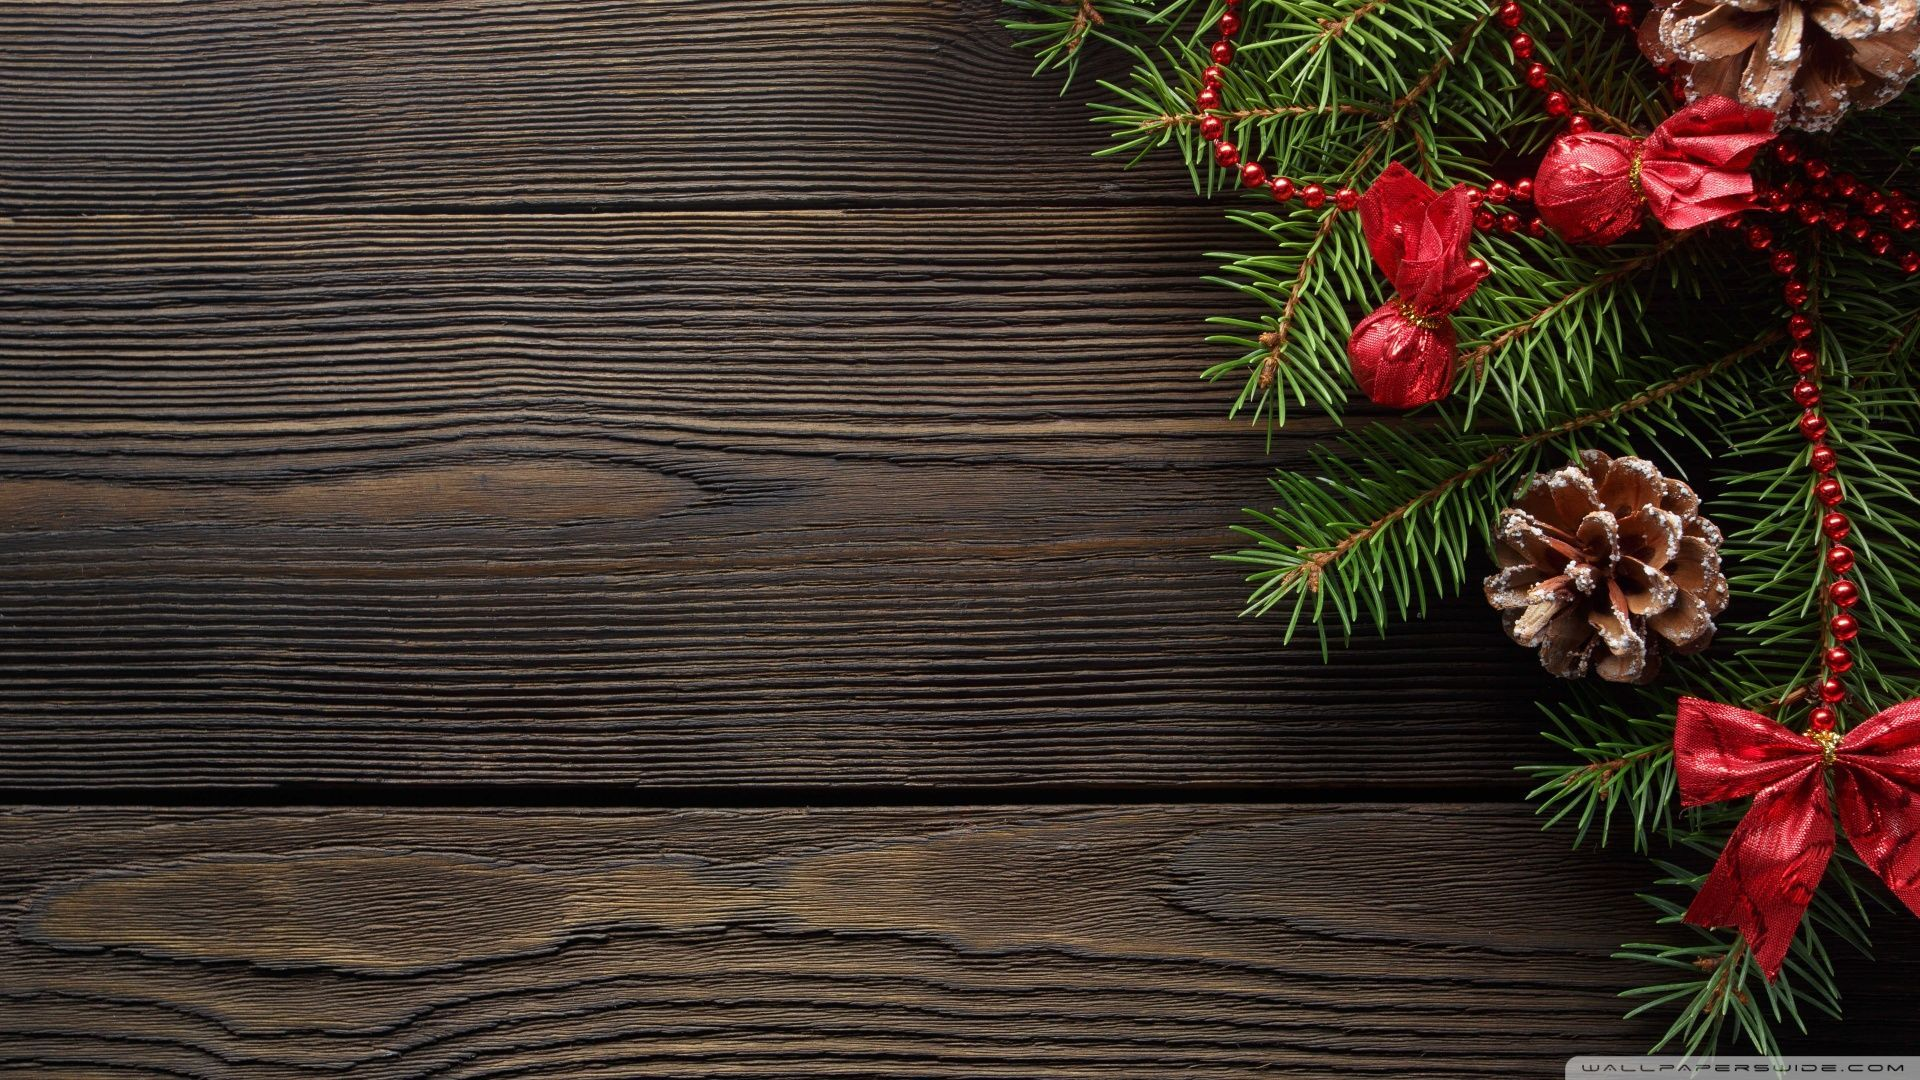 Christmas Wood Wallpapers Top Free Christmas Wood